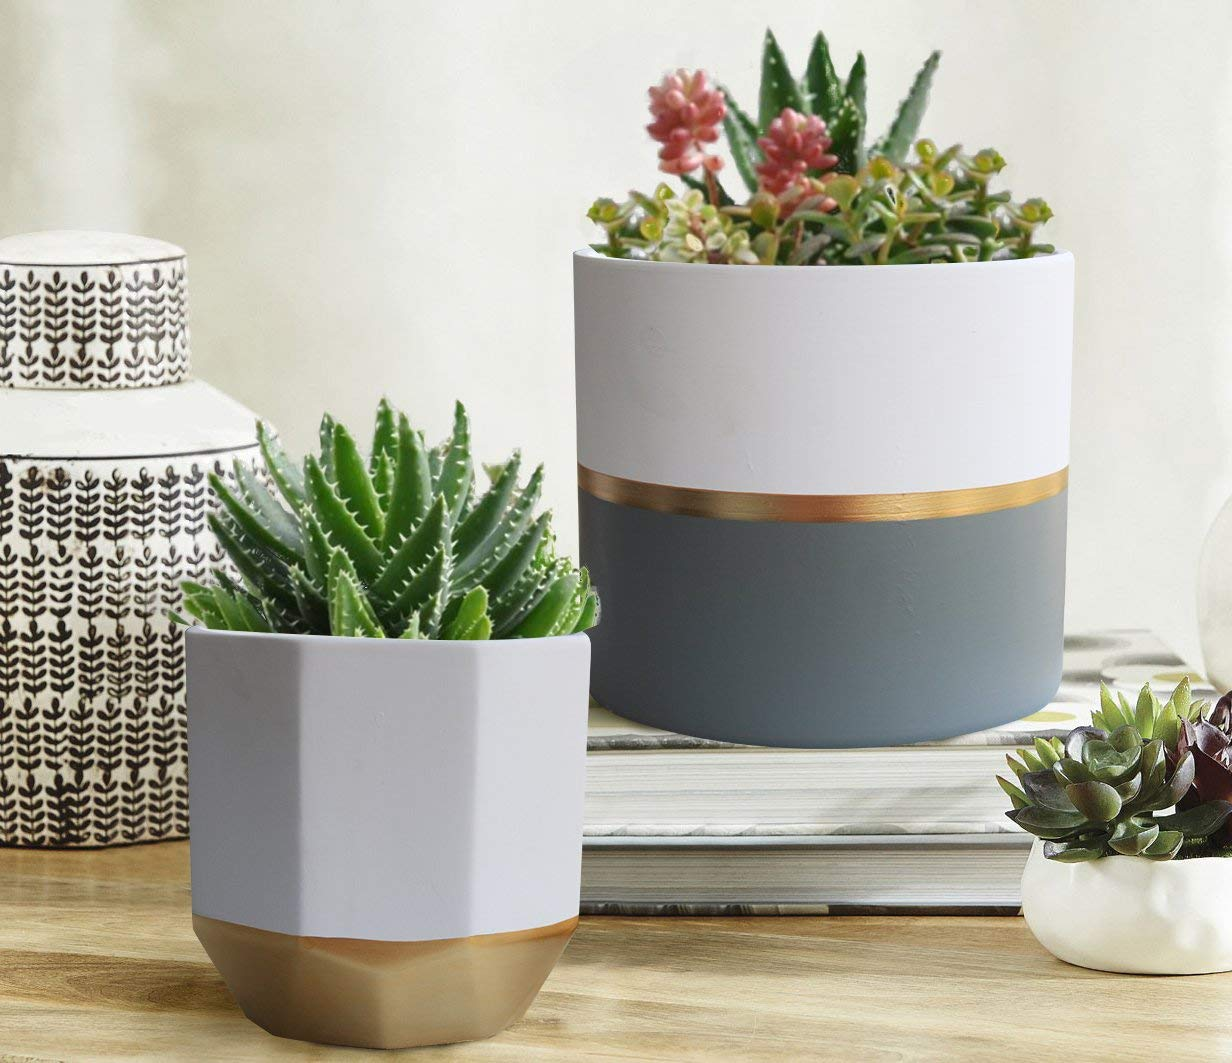 "White Ceramic Flower Pot Garden Planters 6.5"" Pack 2 Indoor, Plant Containers with Gold and Grey Detailing."